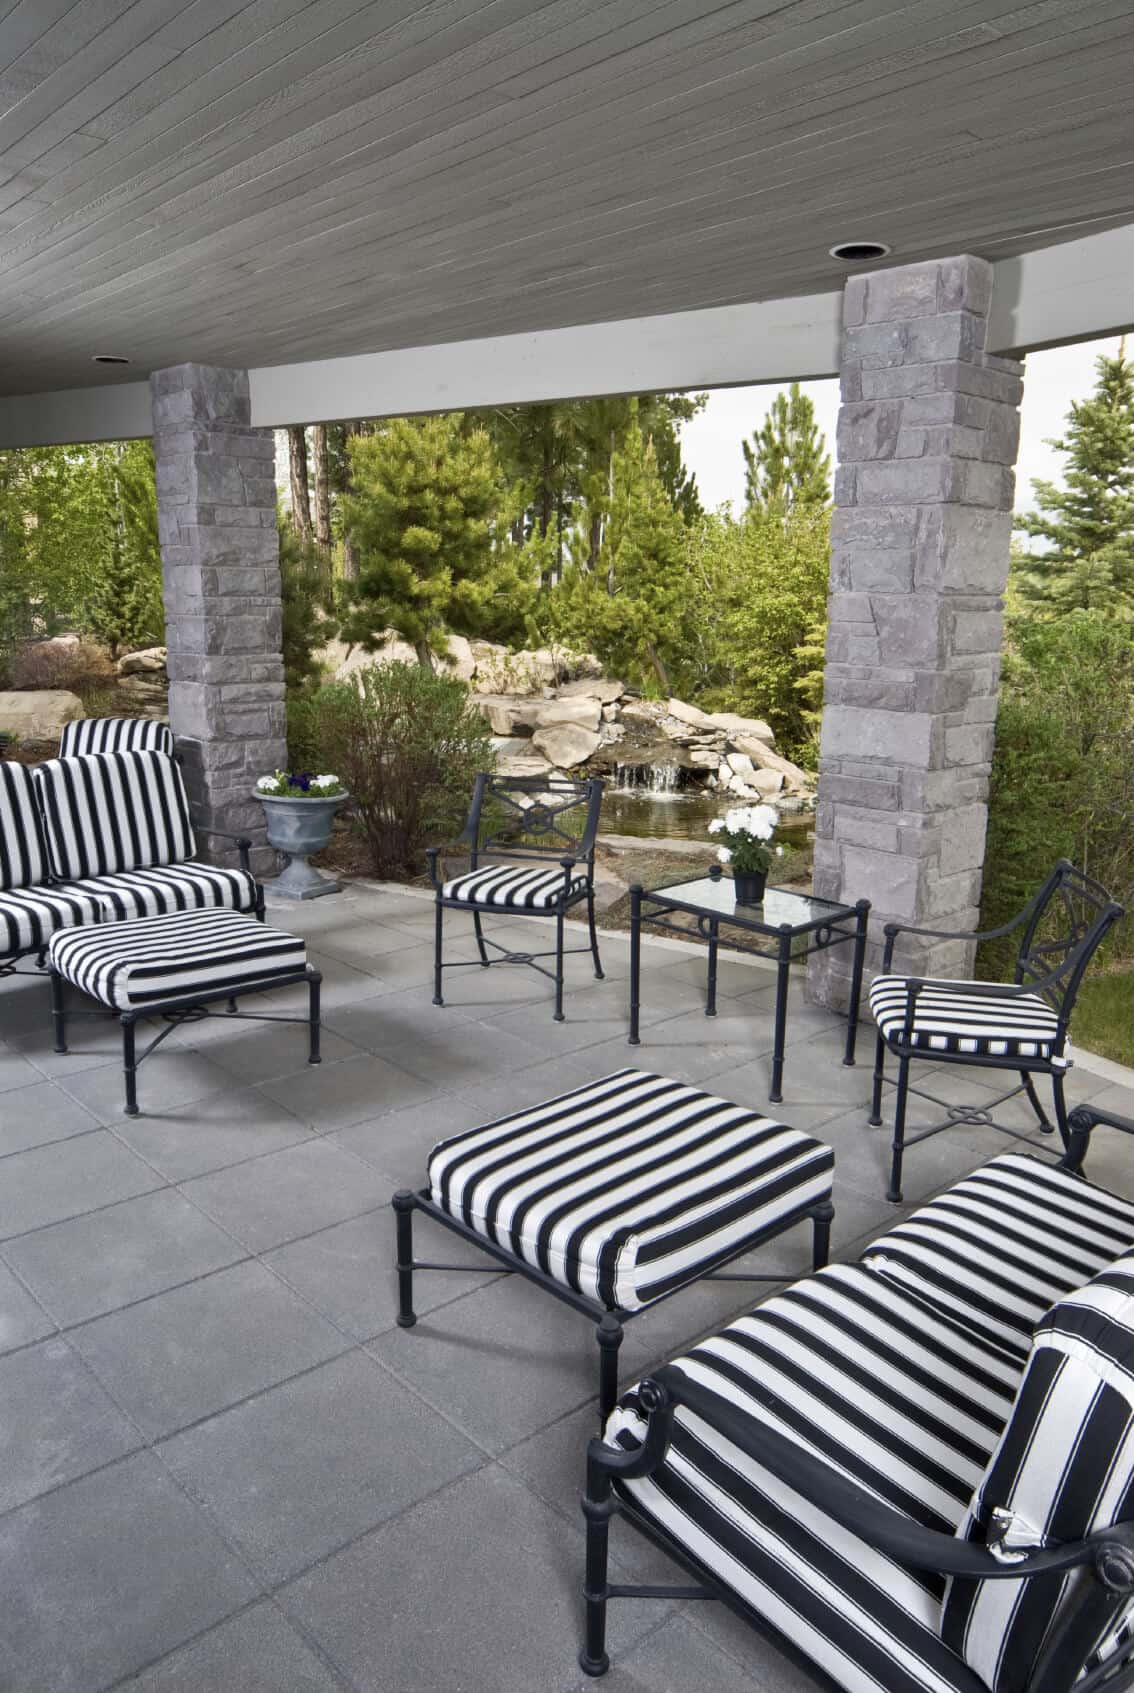 Mesmerizing black and white striped patio furniture provides a striking contrast to the light gray stone tile and columns of this covered patio. In the background is a small waterfall and pond.